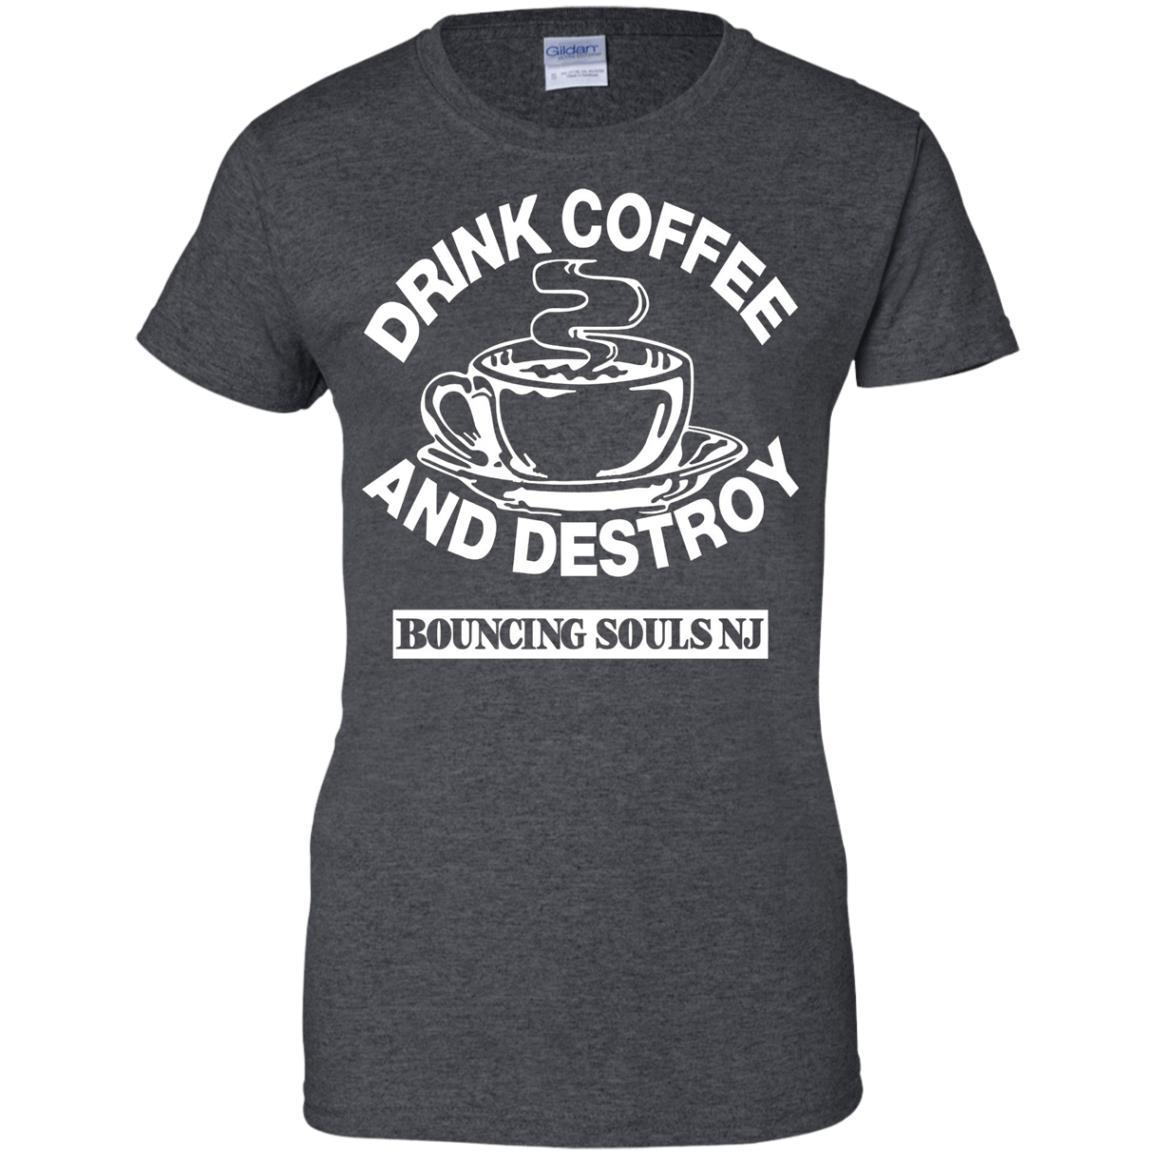 Drink Coffee And Destroy Bouncing Souls T- Shirt